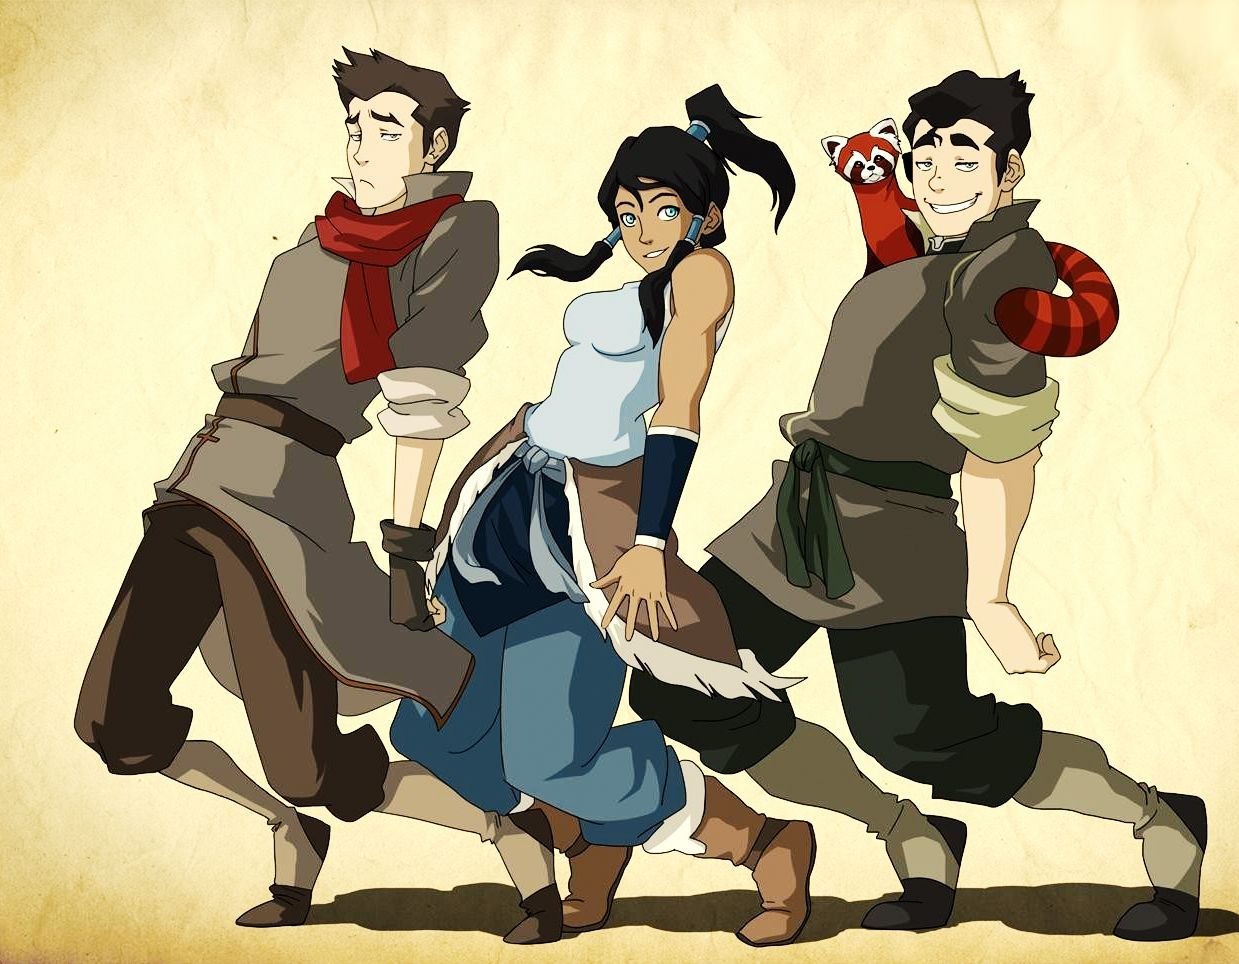 Korra And Mako And Bolin 5 Wallpaper Background Hd cartoons i 1239x964